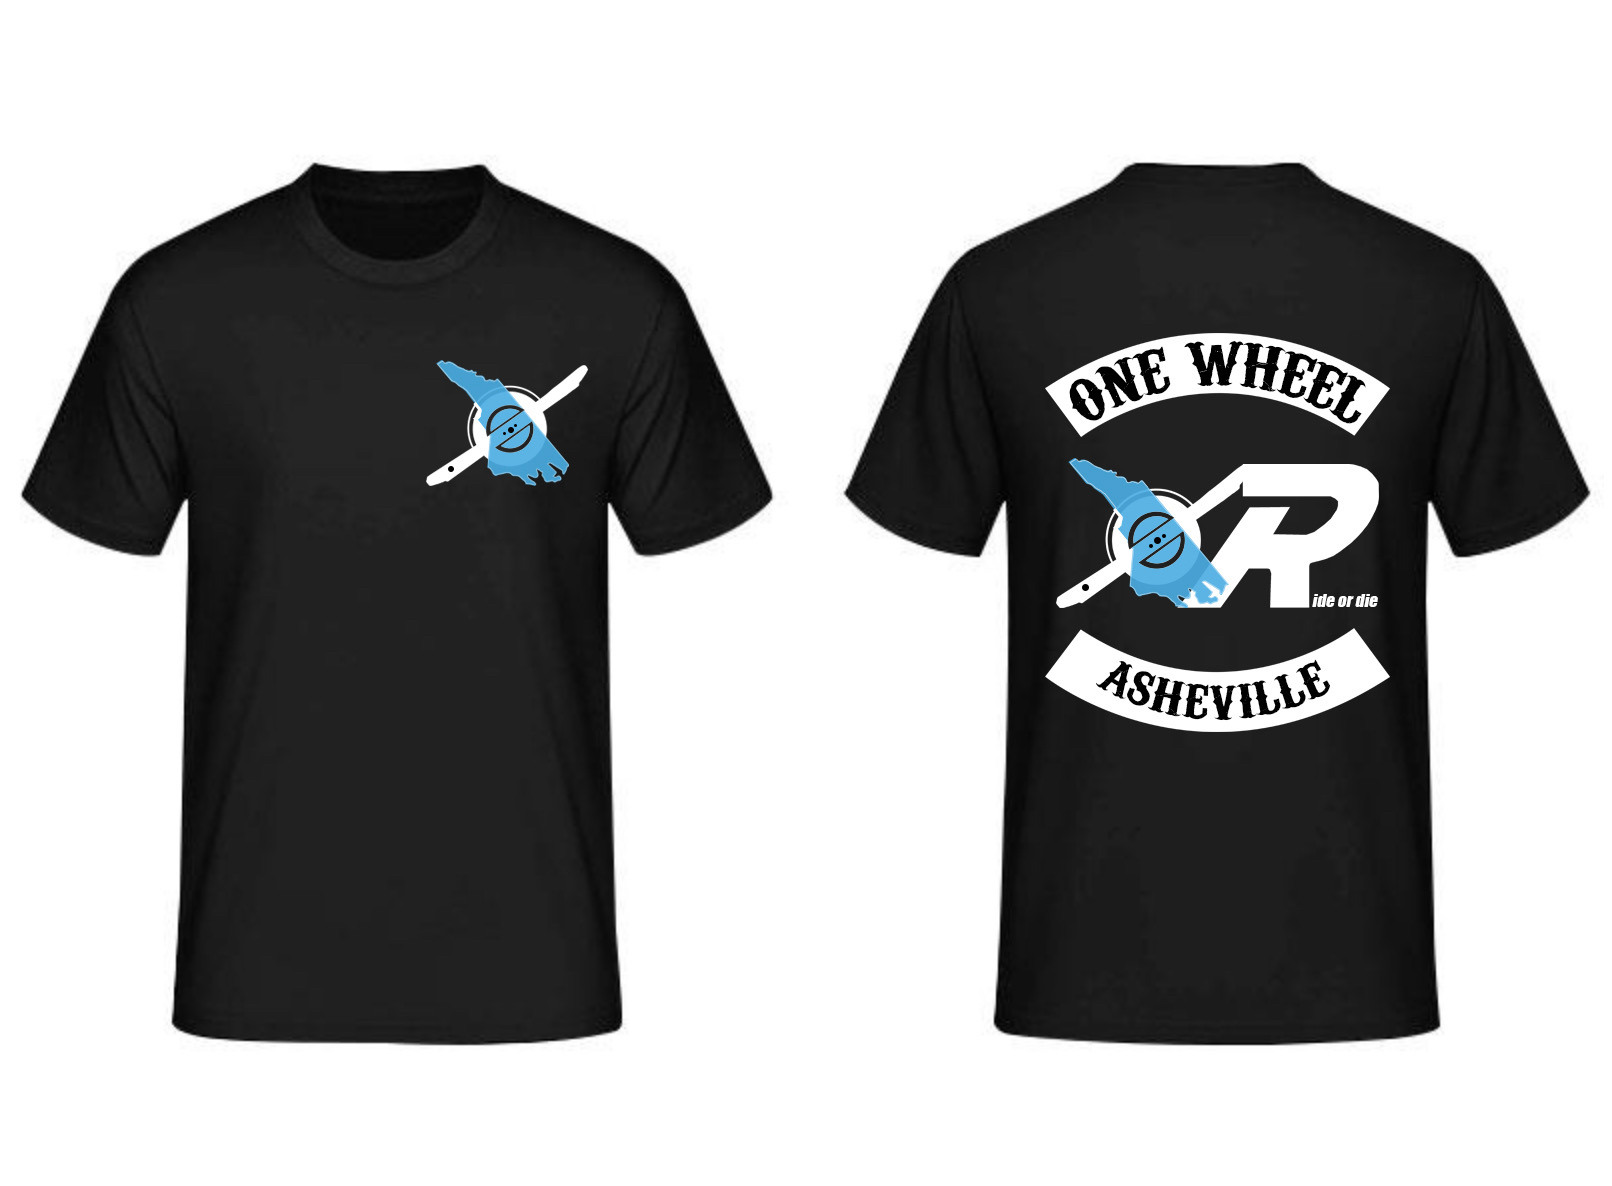 One Wheel Asheville Shirts